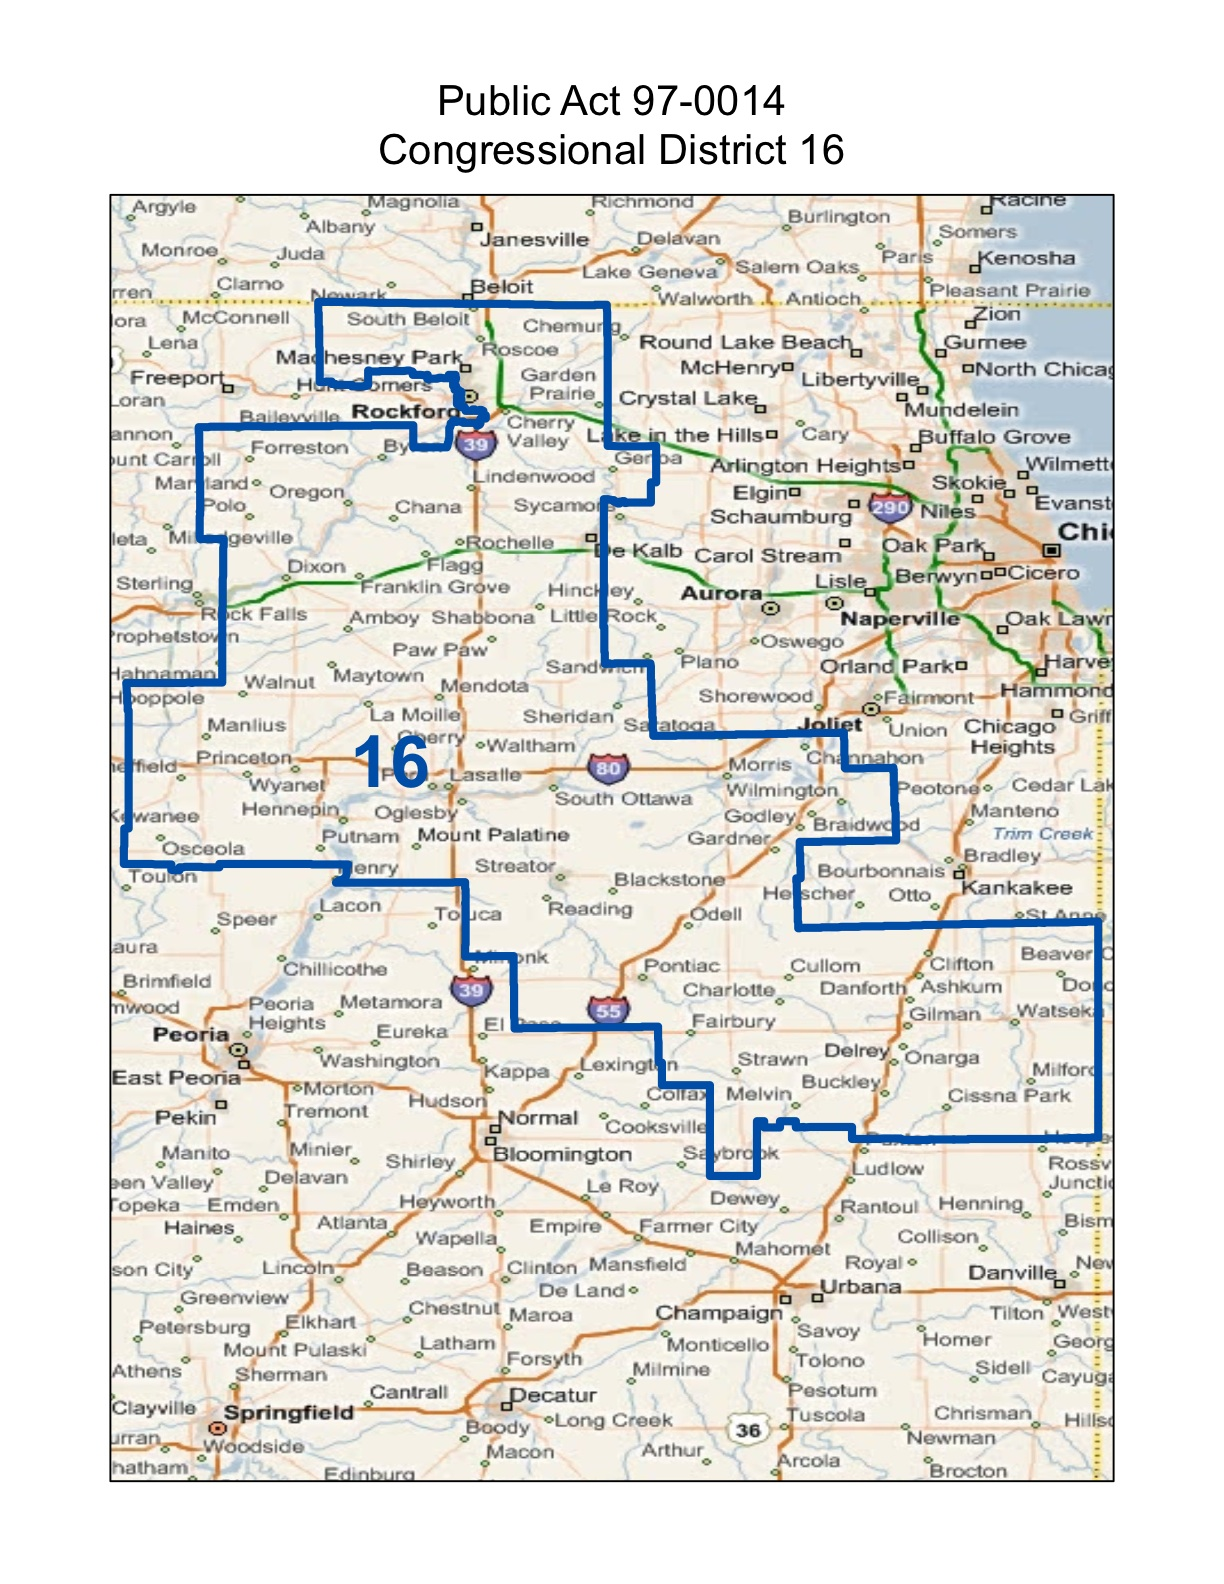 map of realigned illinois 16th congressional district